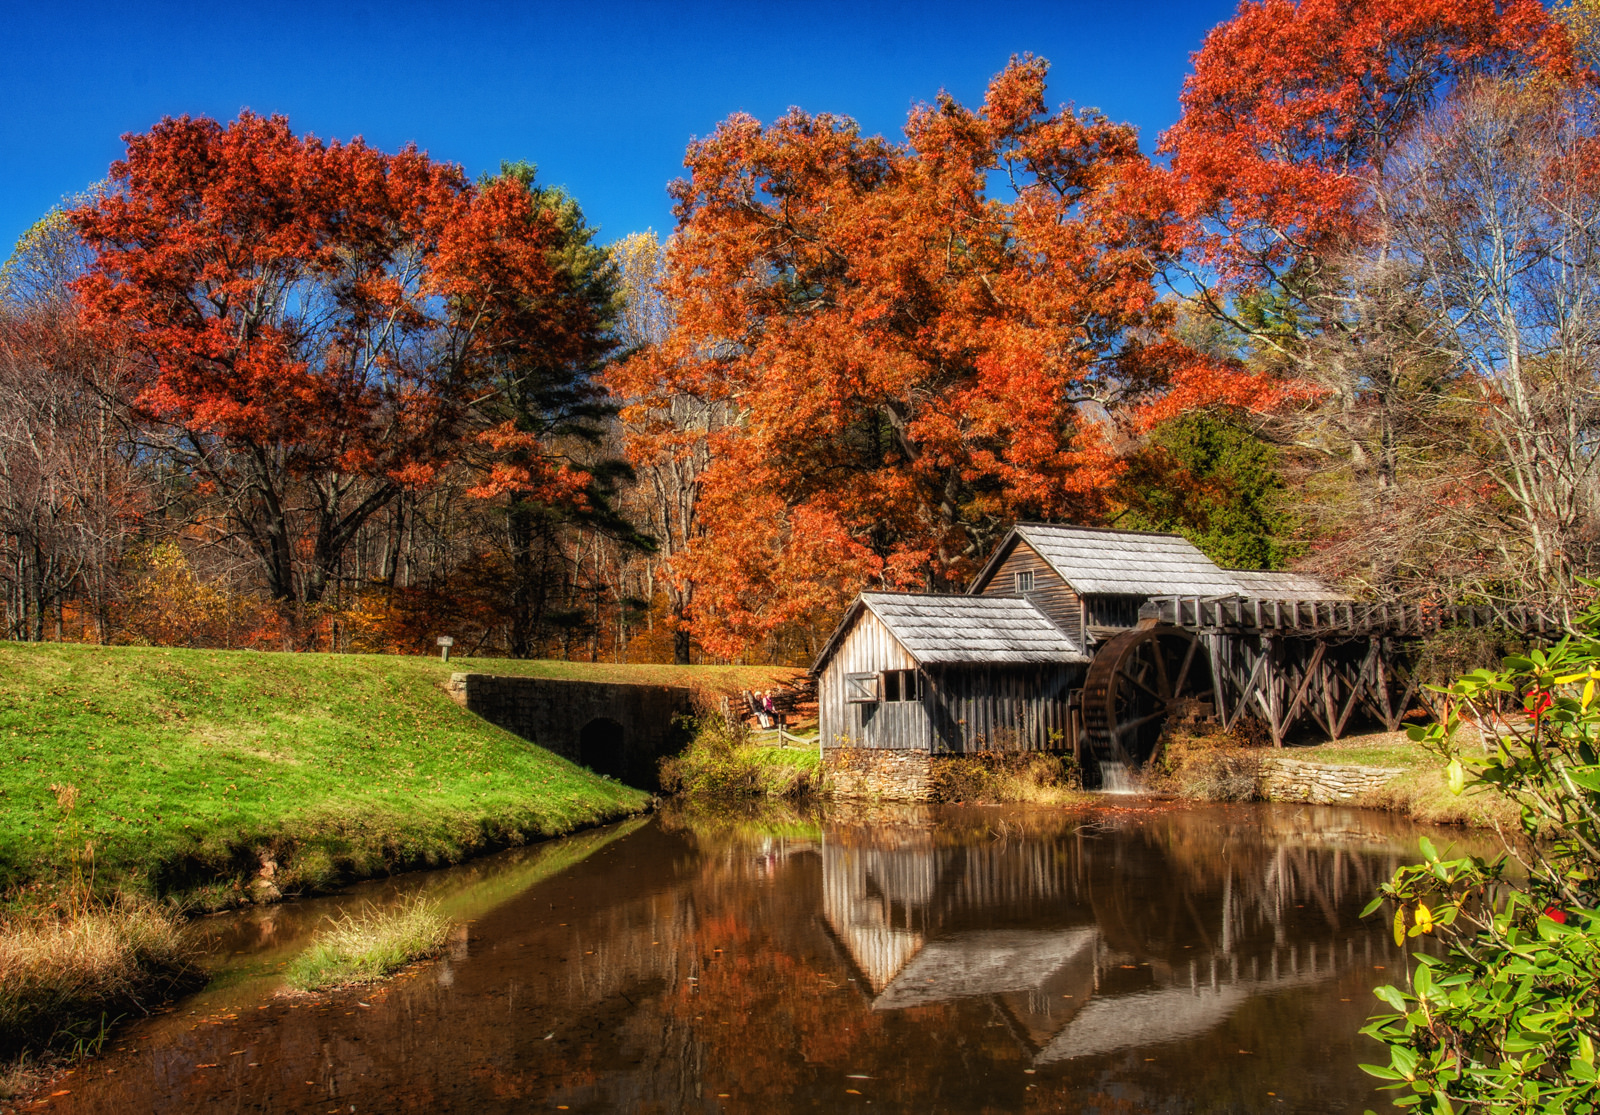 18 Things You May Not Expect When Moving To Virginia